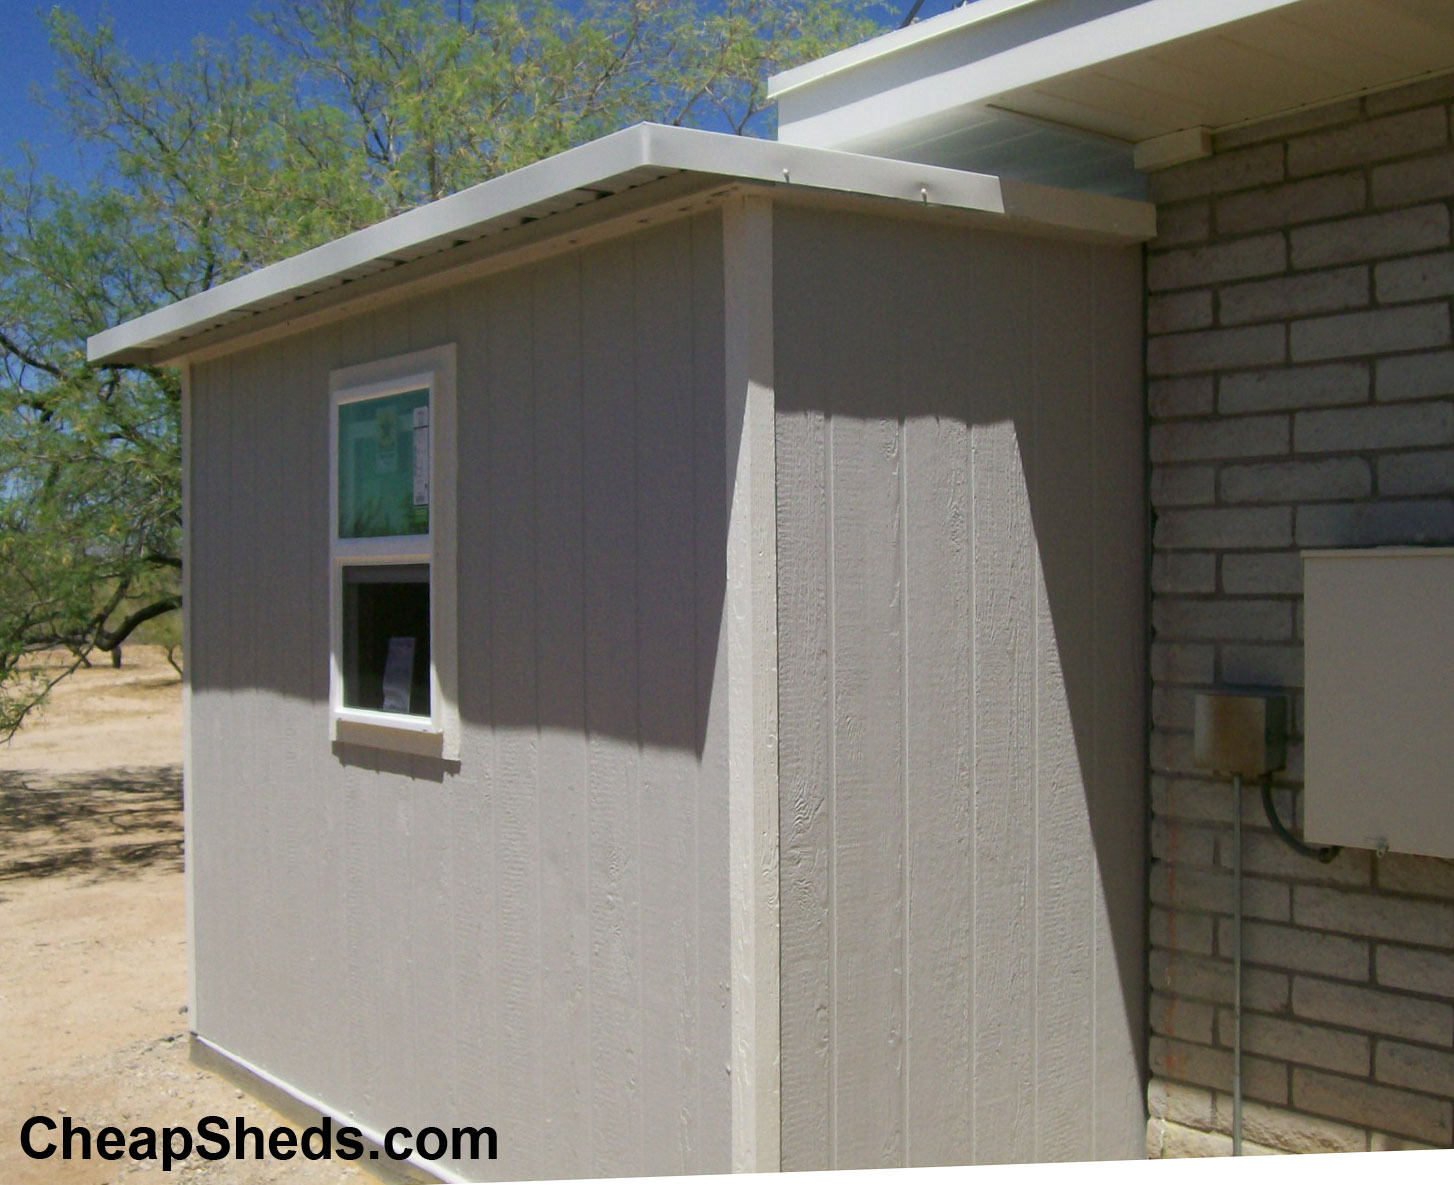 How To Build A Lean To Style Shed